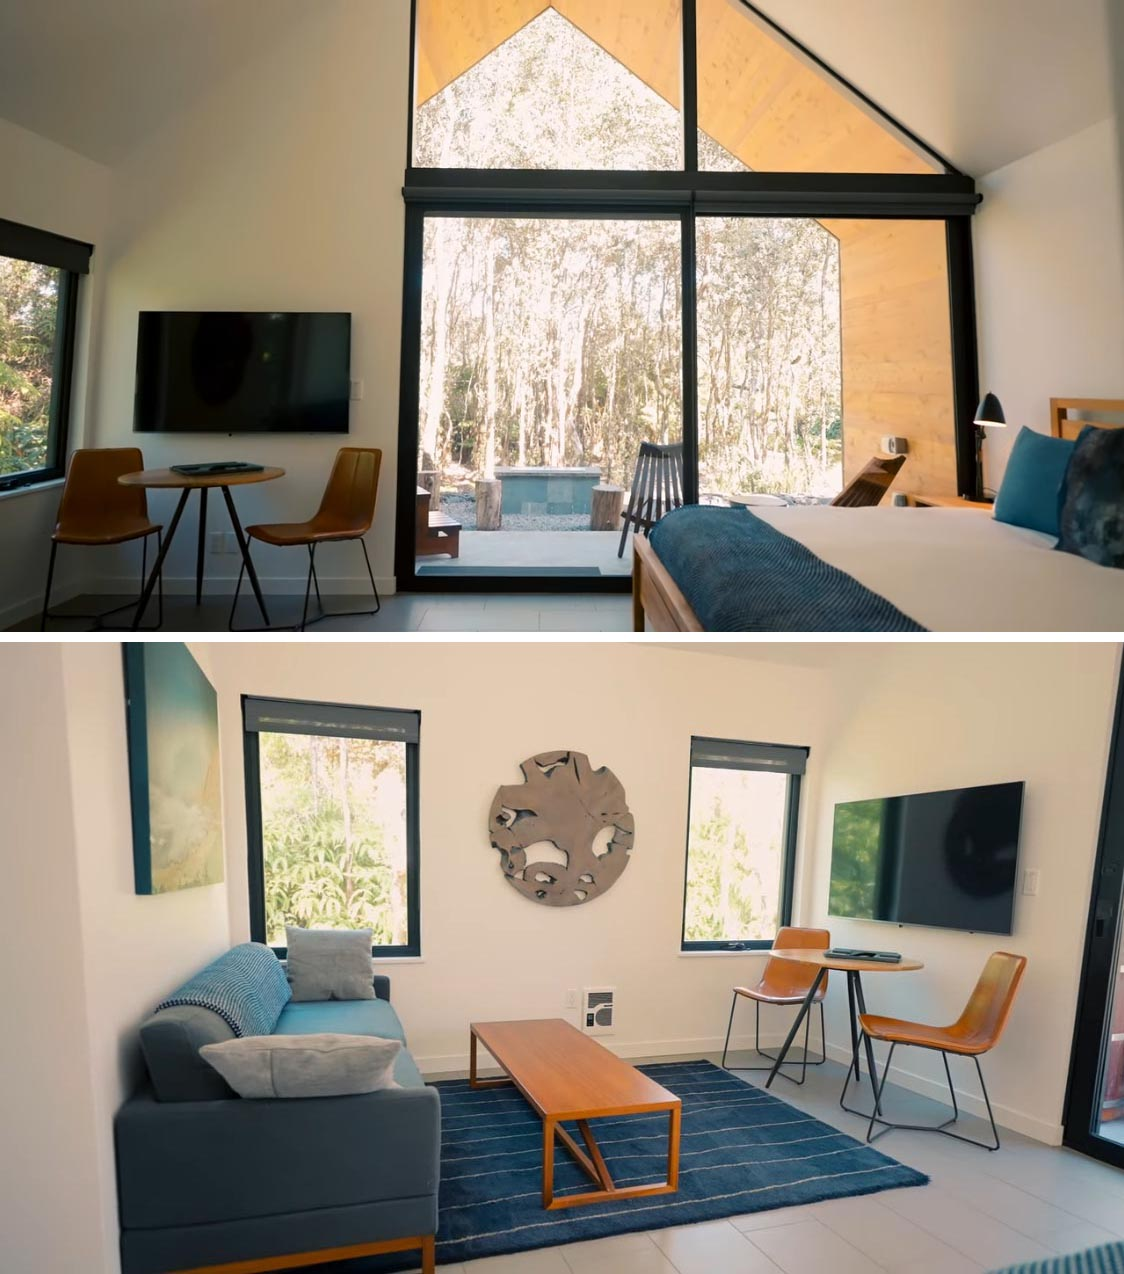 The main living area of a modern tiny home is shared with the bedroom, creating an open plan interior filled with natural light.